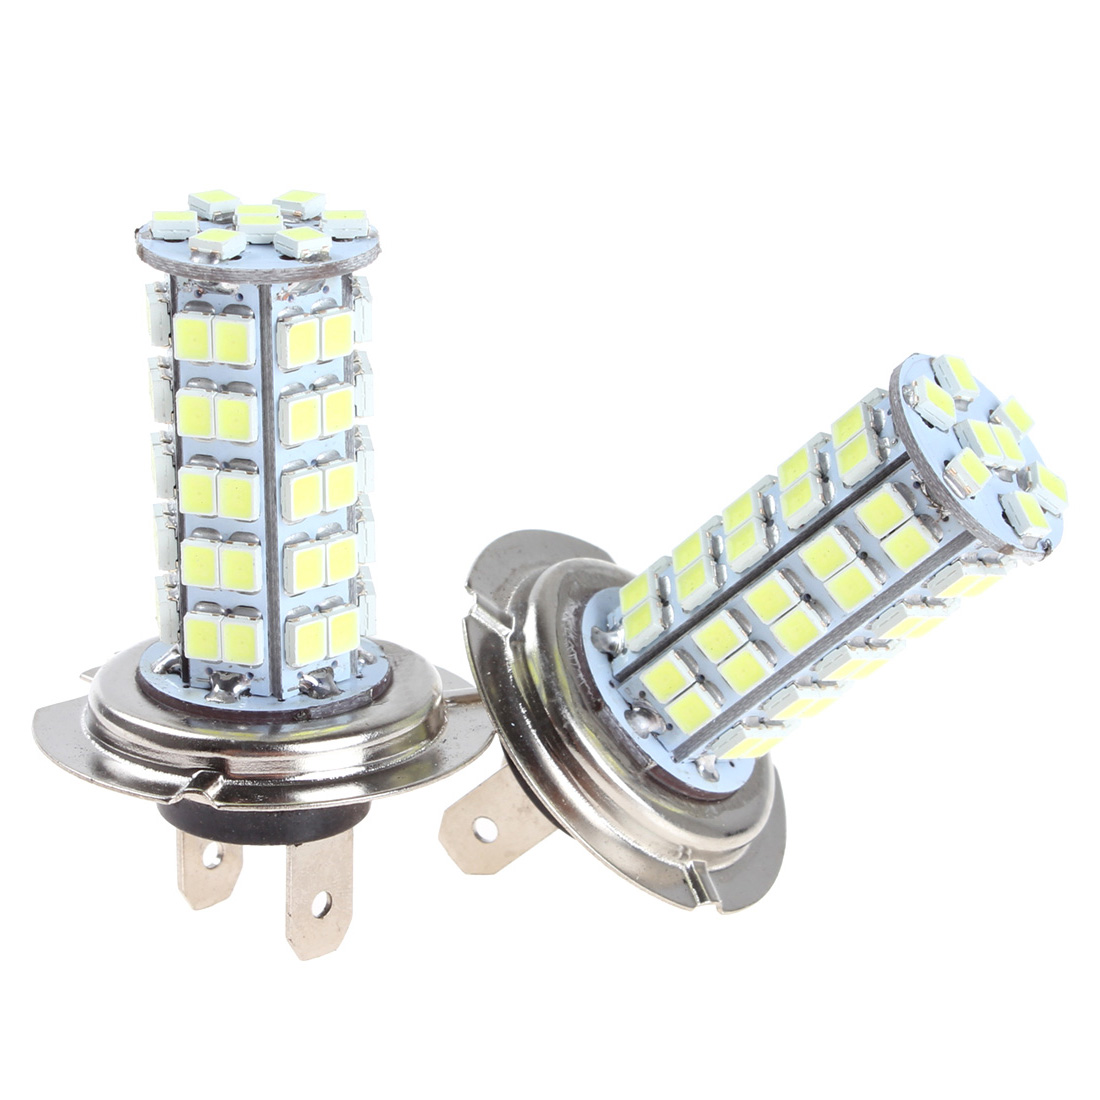 2 Pcs H7 Car Fog Light 68 SMD LEDs Xenon White Bulbs LED Signal Lamp Fit For Bentley / Mercedes / BMW / Audi 12V Vehicle